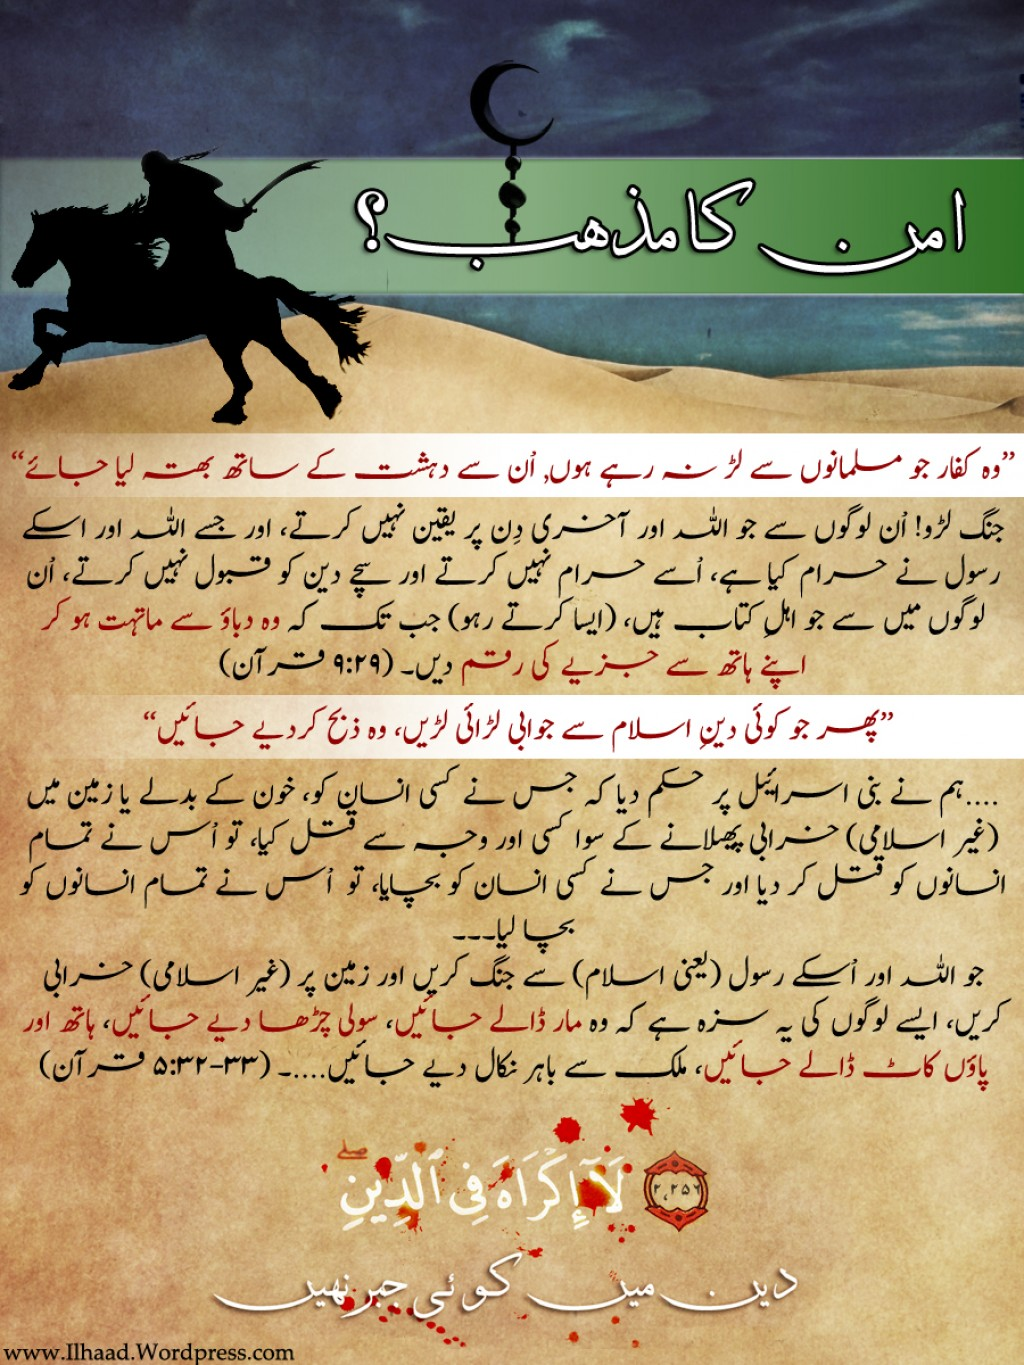 009 Peacefull Religion21 Essay On Islam Is Religion Of Peace Outstanding A Short Pdf The And Tolerance Large